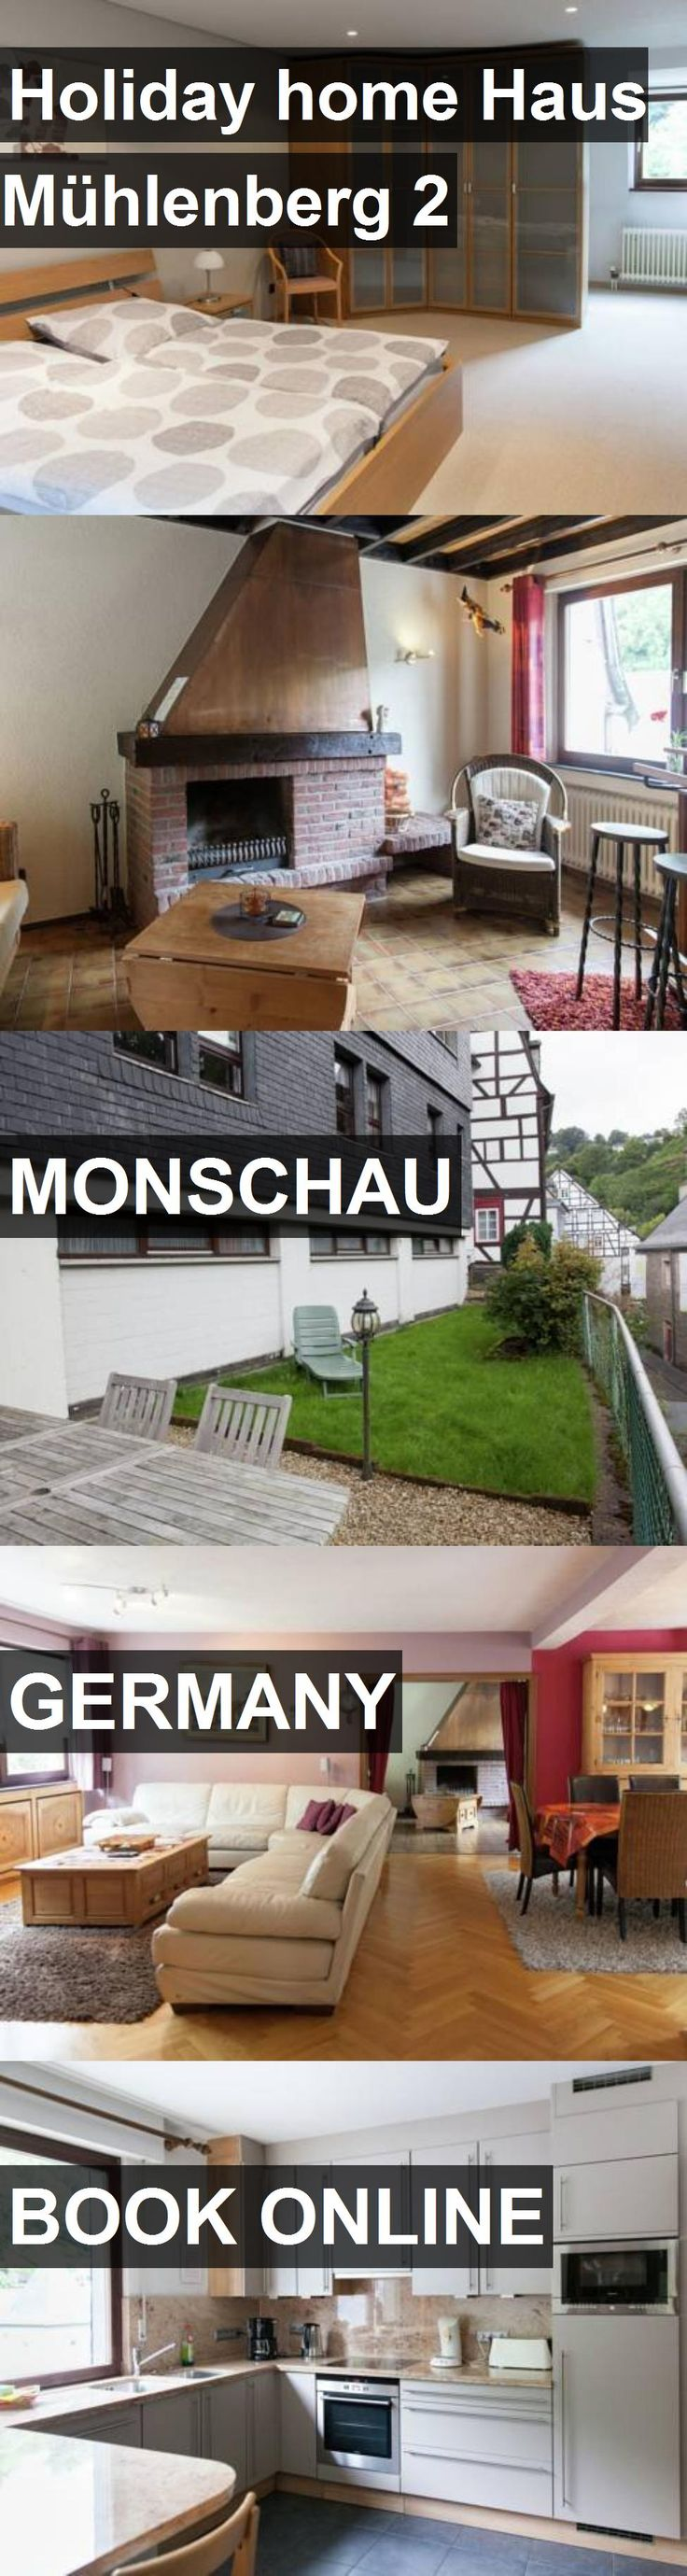 Hotel Holiday home Haus Mühlenberg 2 in Monschau, Germany. For more information, photos, reviews and best prices please follow the link. #Germany #Monschau #travel #vacation #hotel